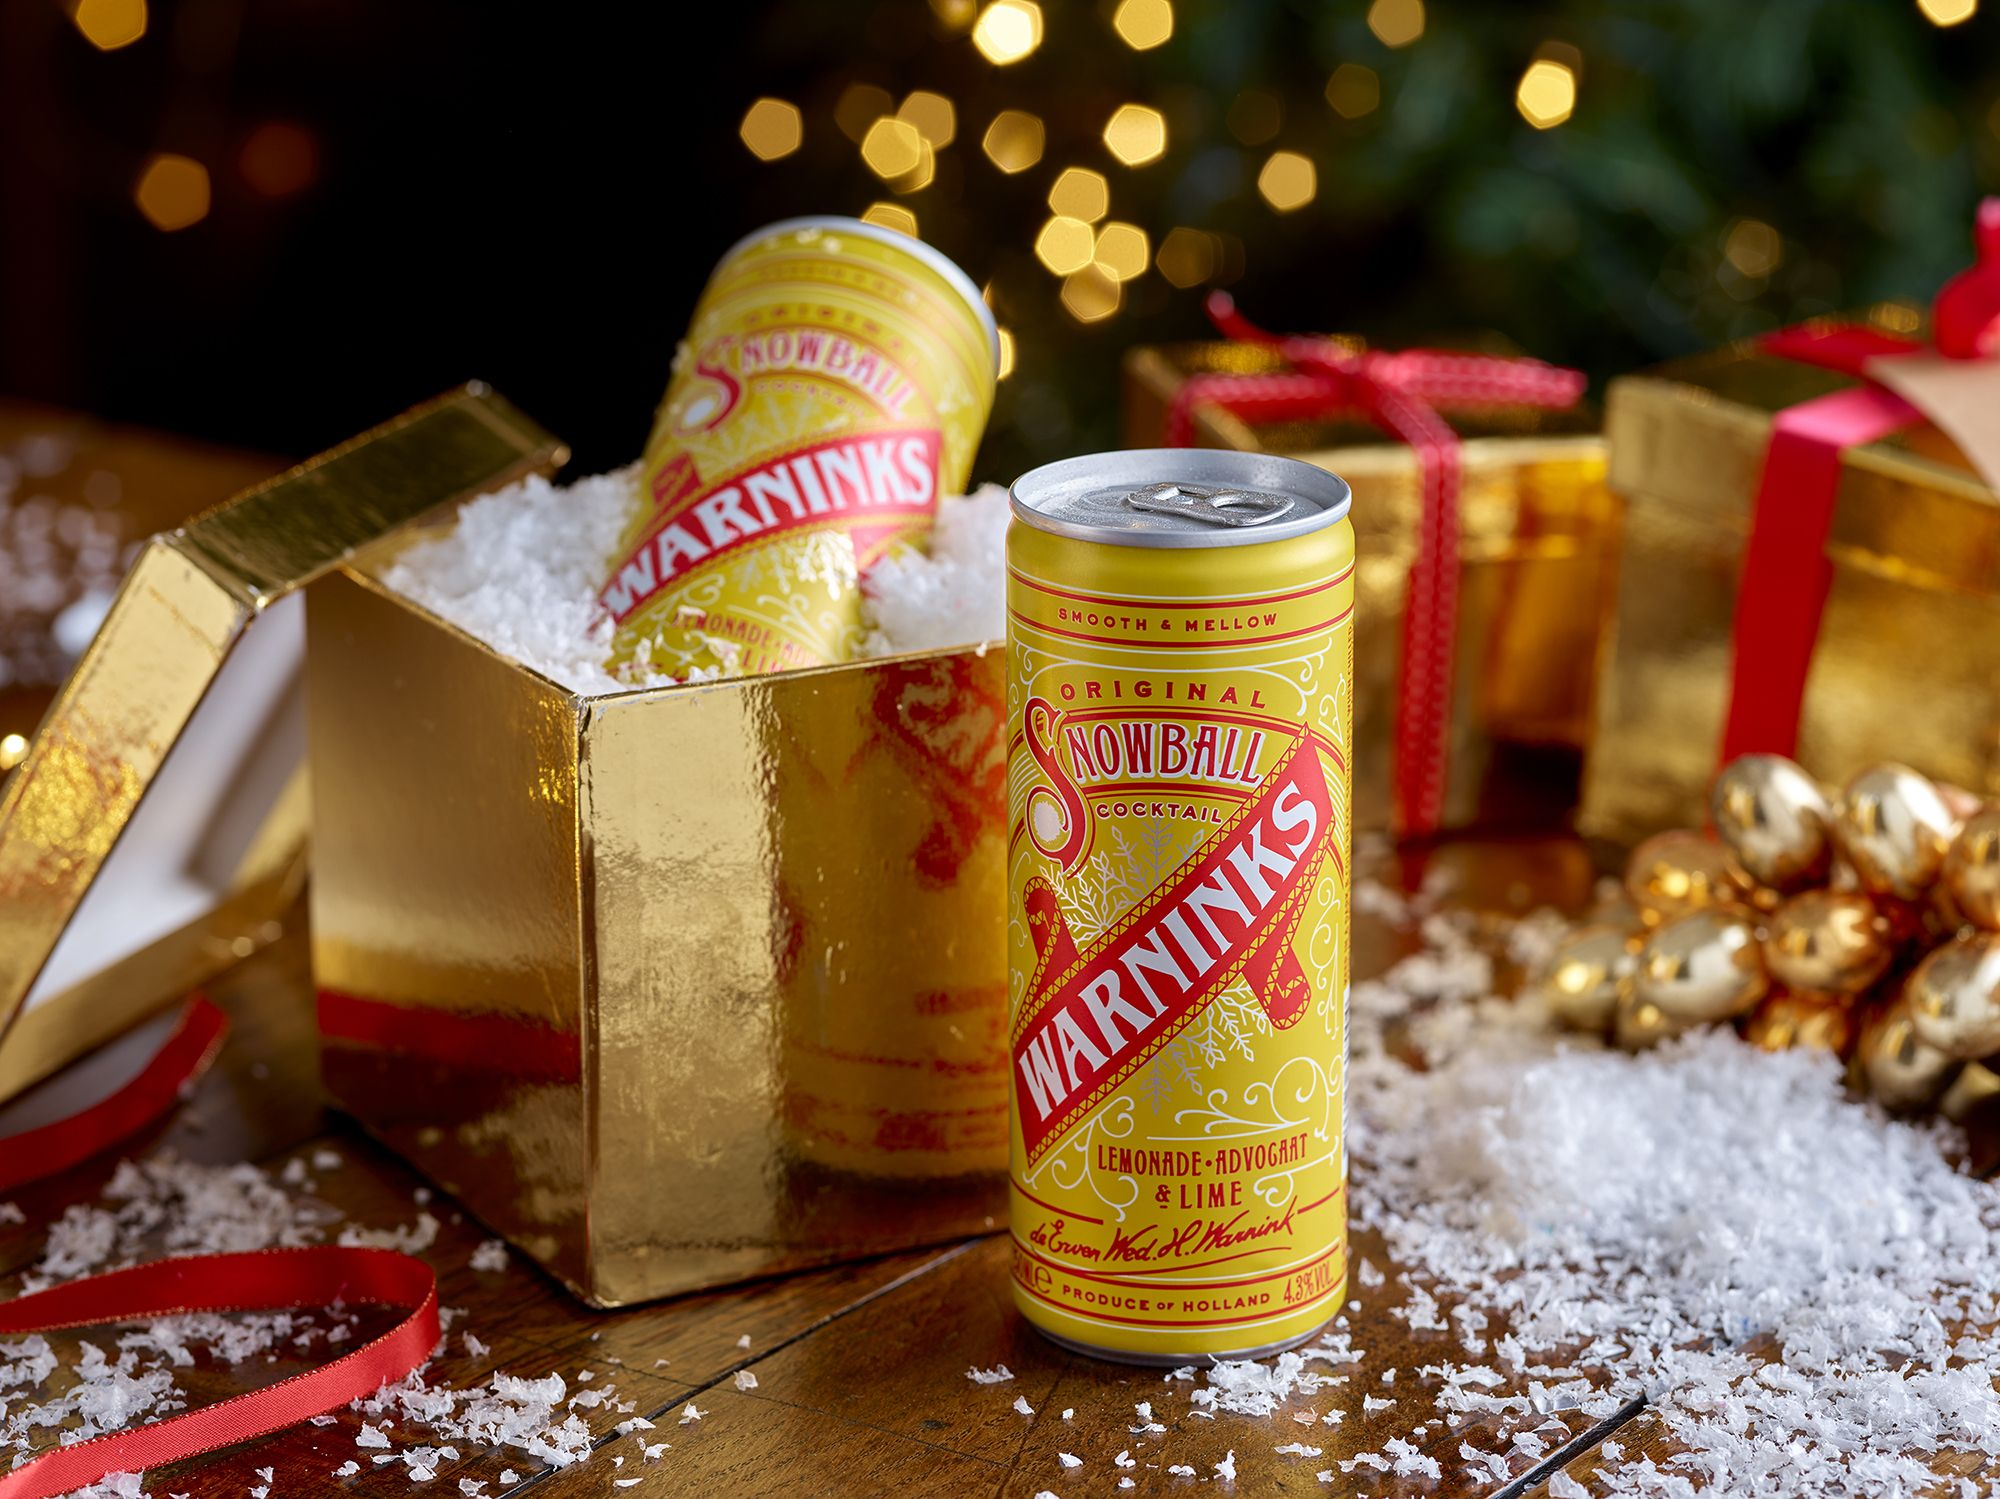 You can now get a classic Snowball cocktail in a can for Christmas